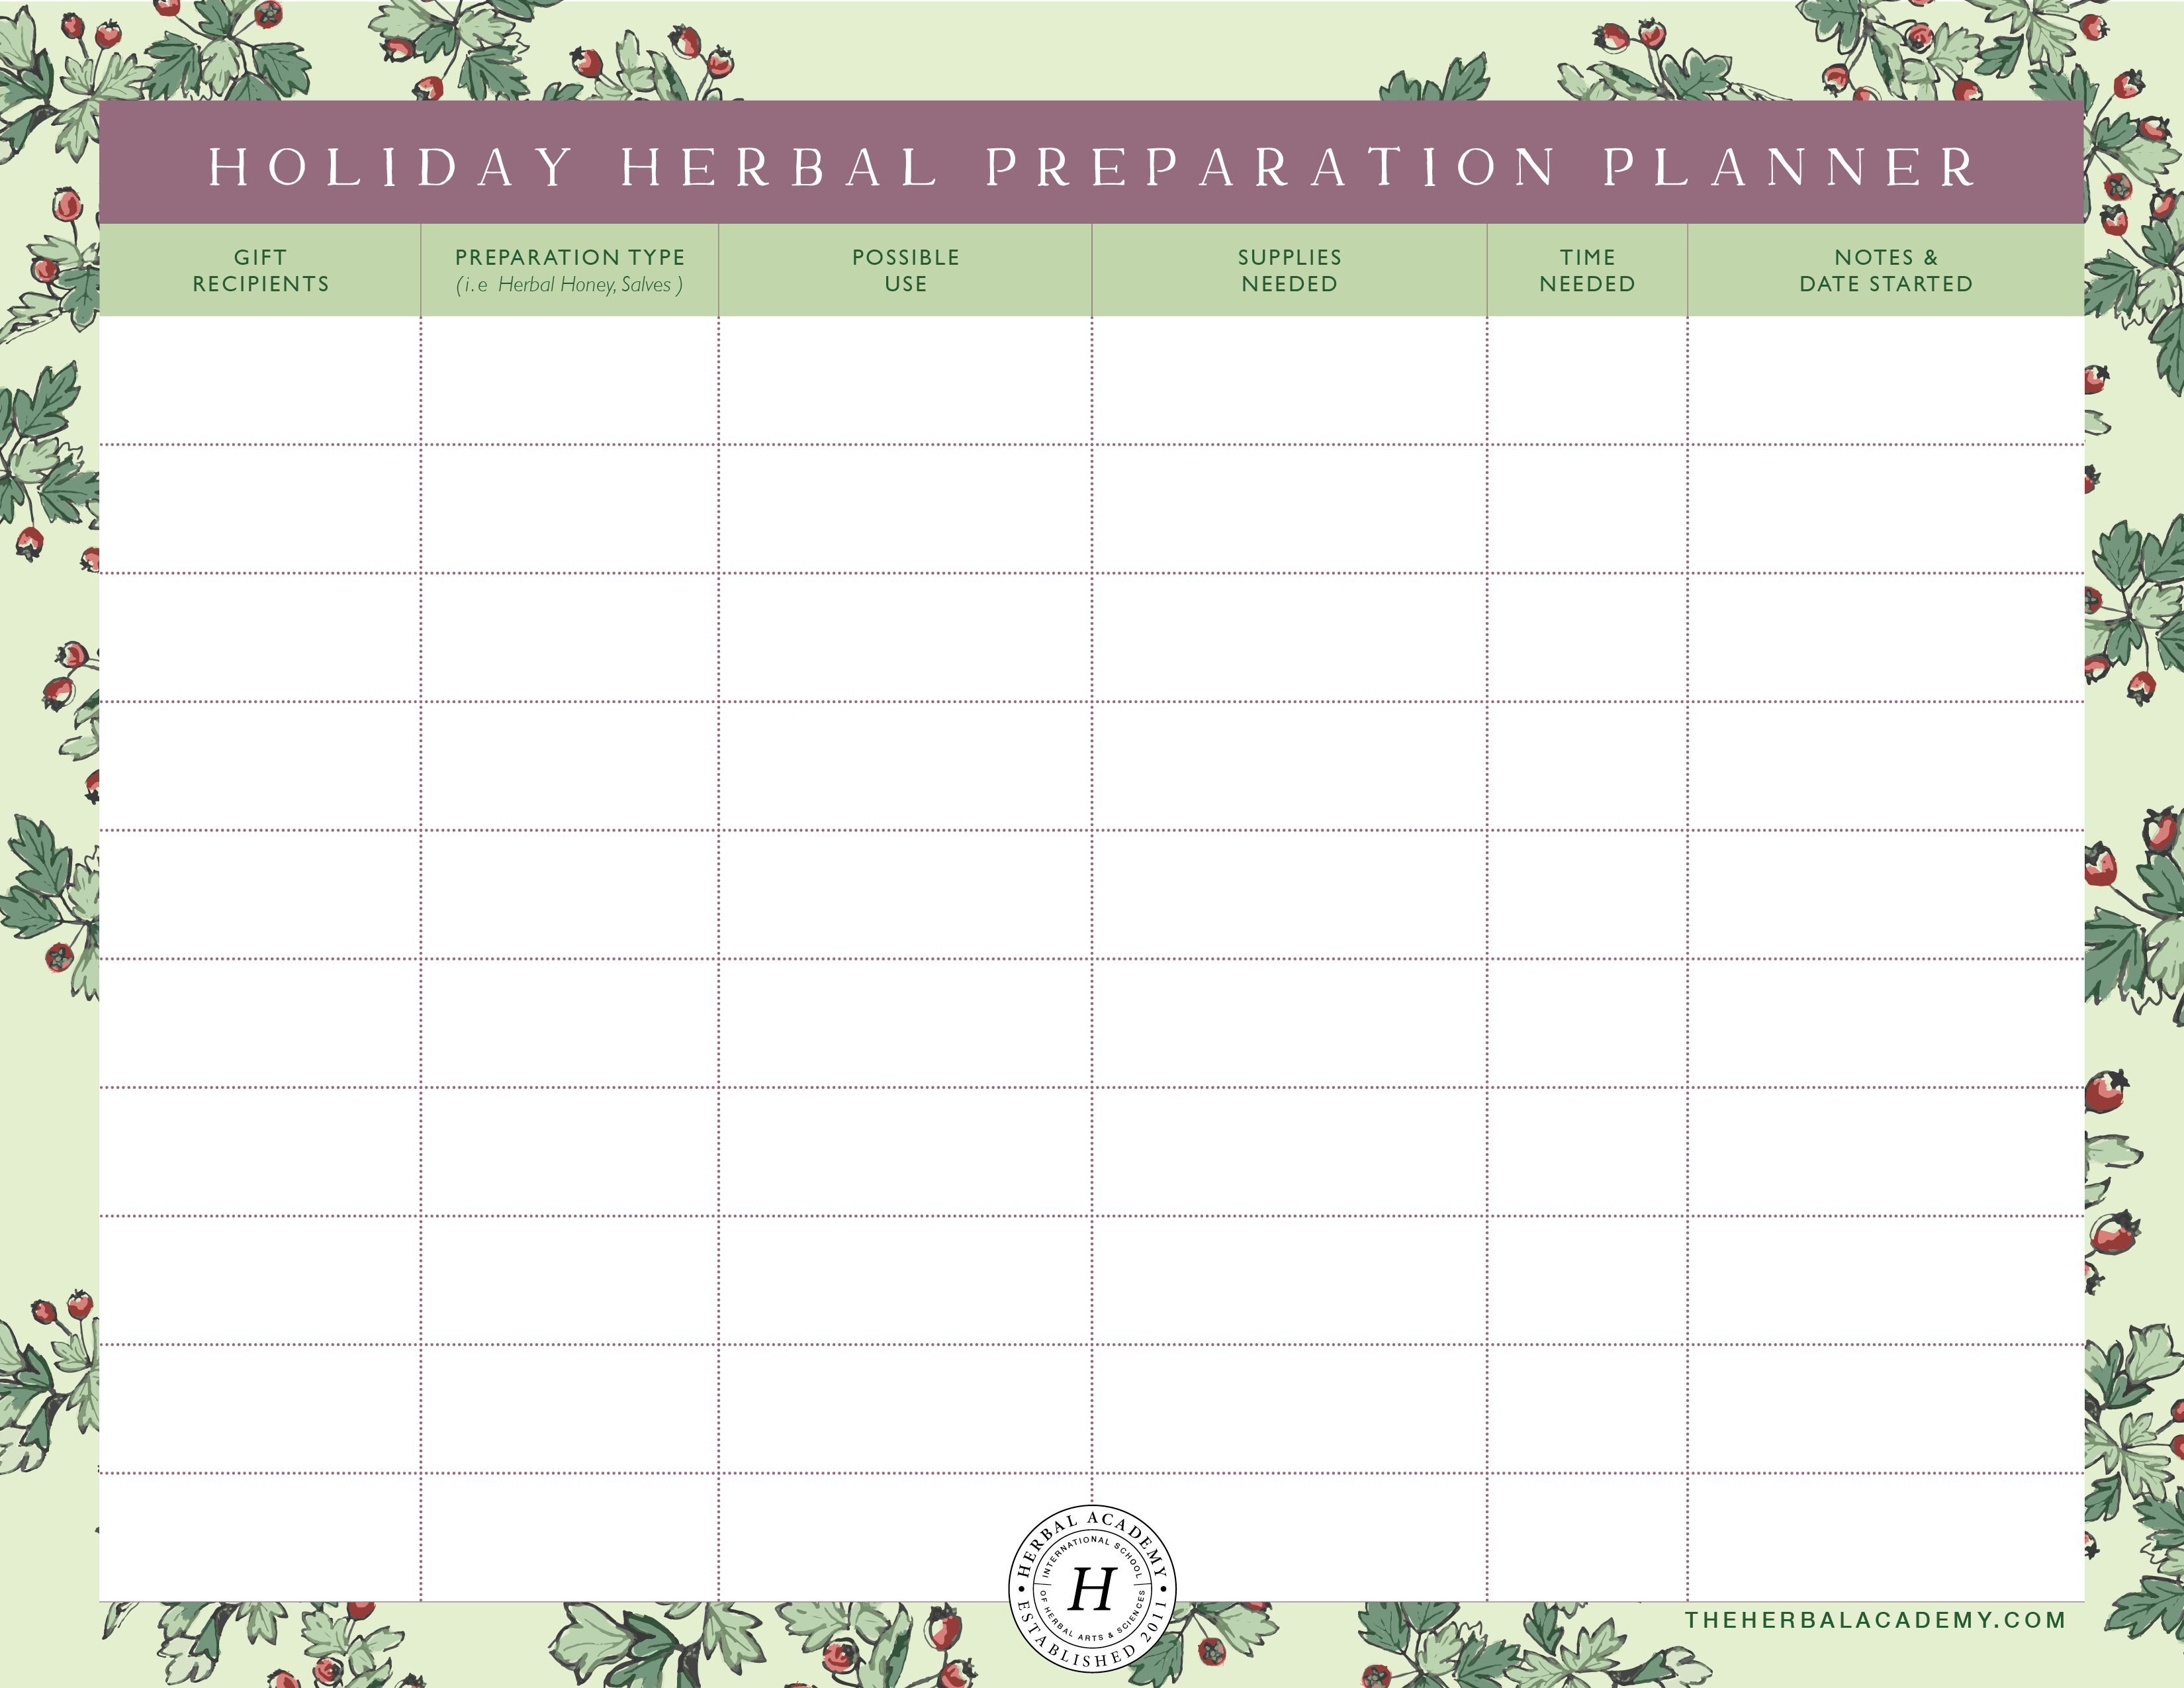 Herbal Holiday Preparations Planner Printable | Herbal Academy | Use this free herbal holiday preparation planner to help you chart out your herbal brewing goals!